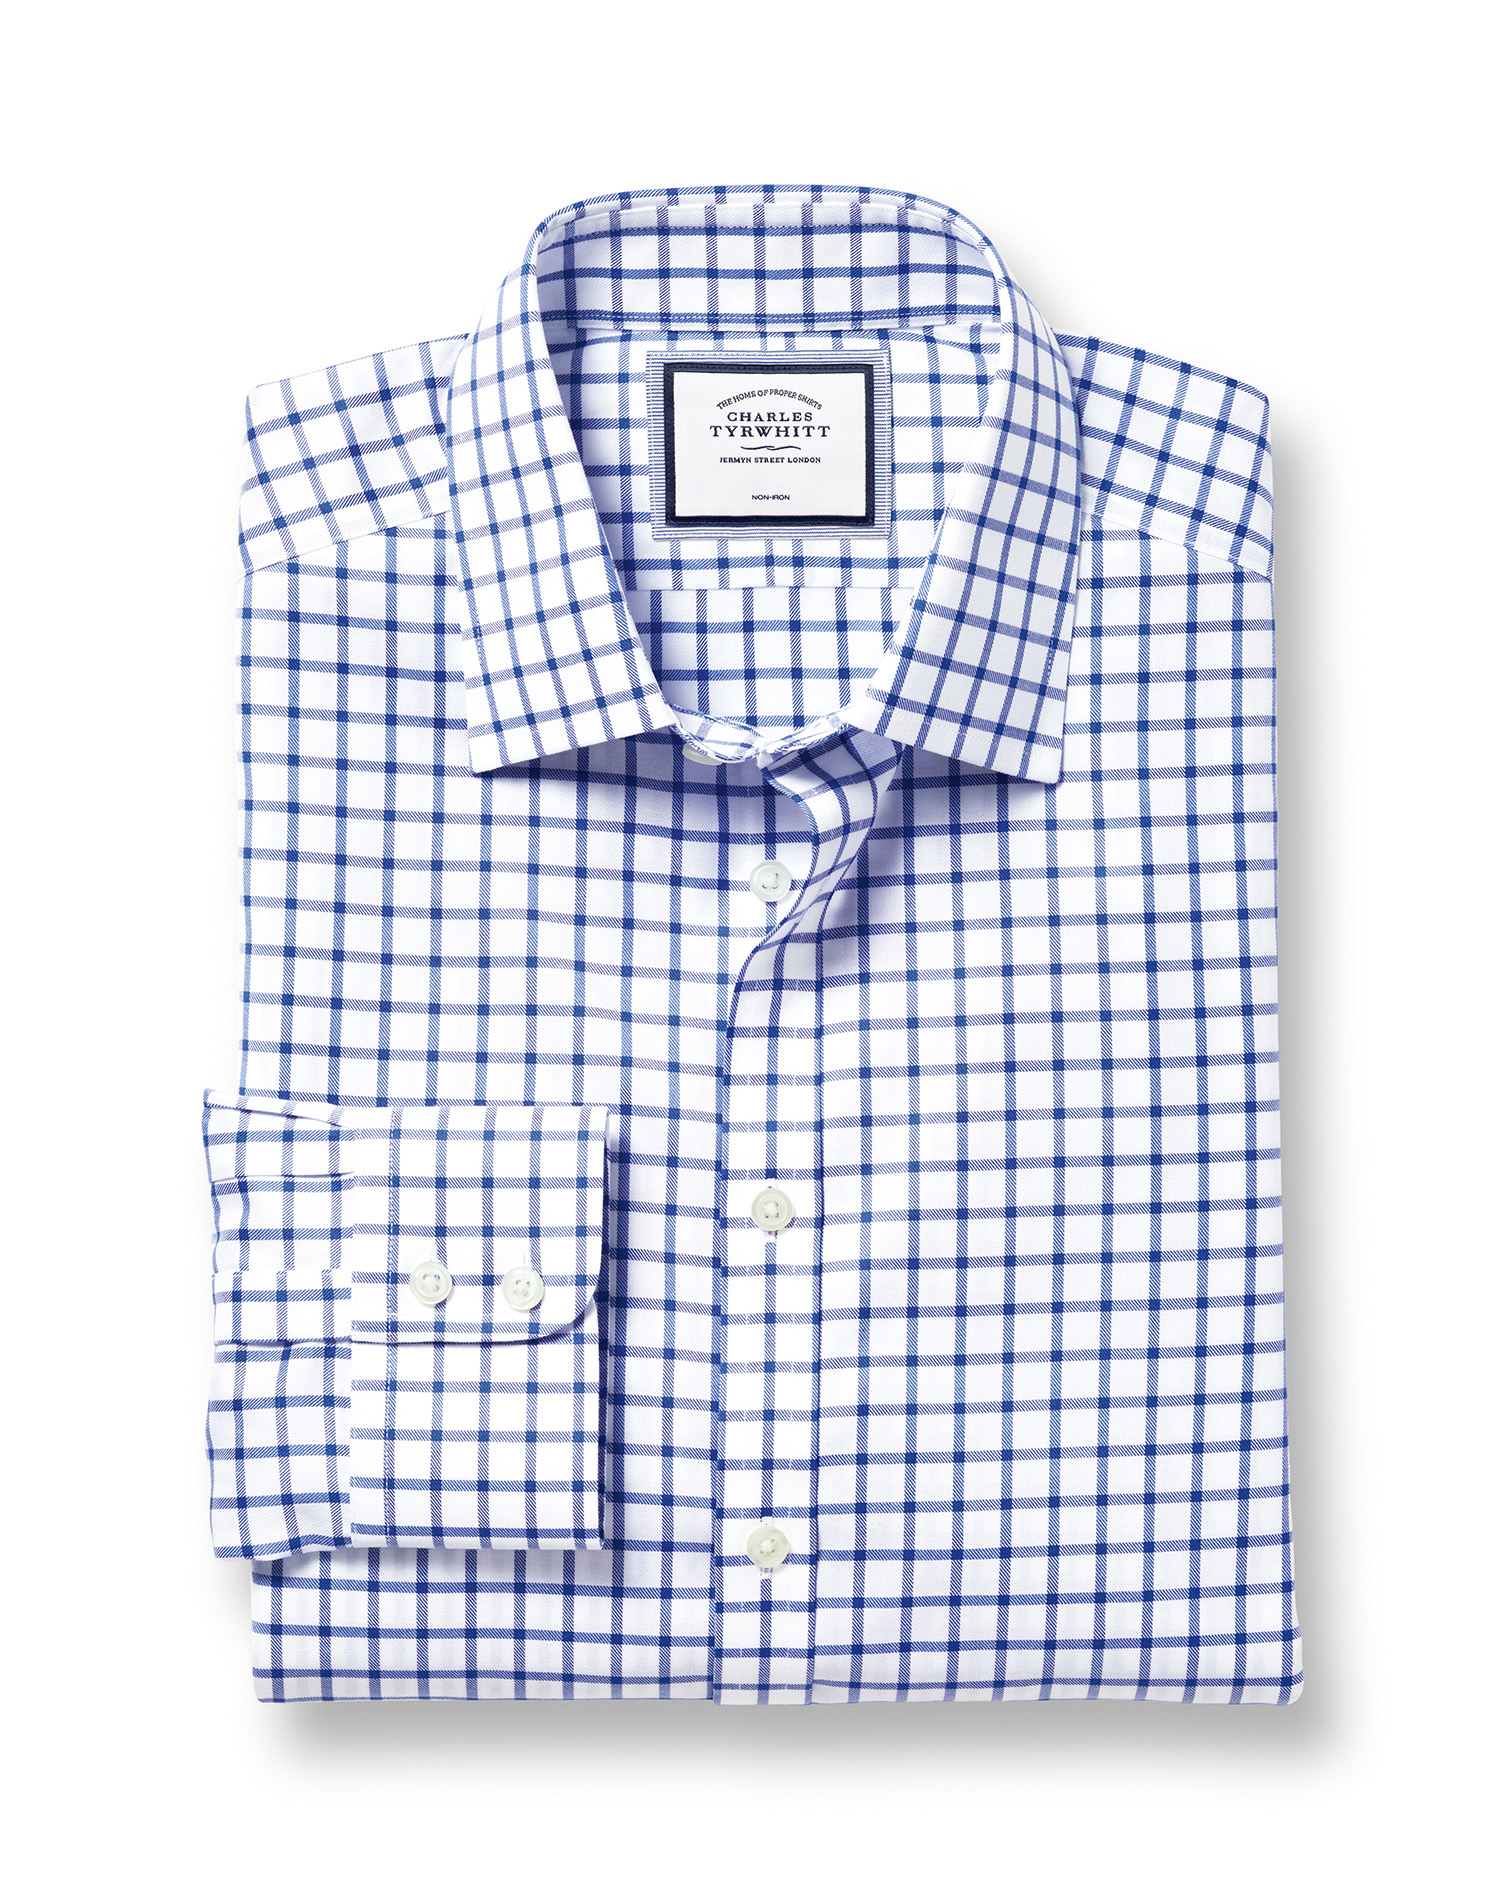 Extra Slim Fit Non-Iron Twill Grid Check Royal Blue Cotton Formal Shirt Single Cuff Size 15.5/36 by